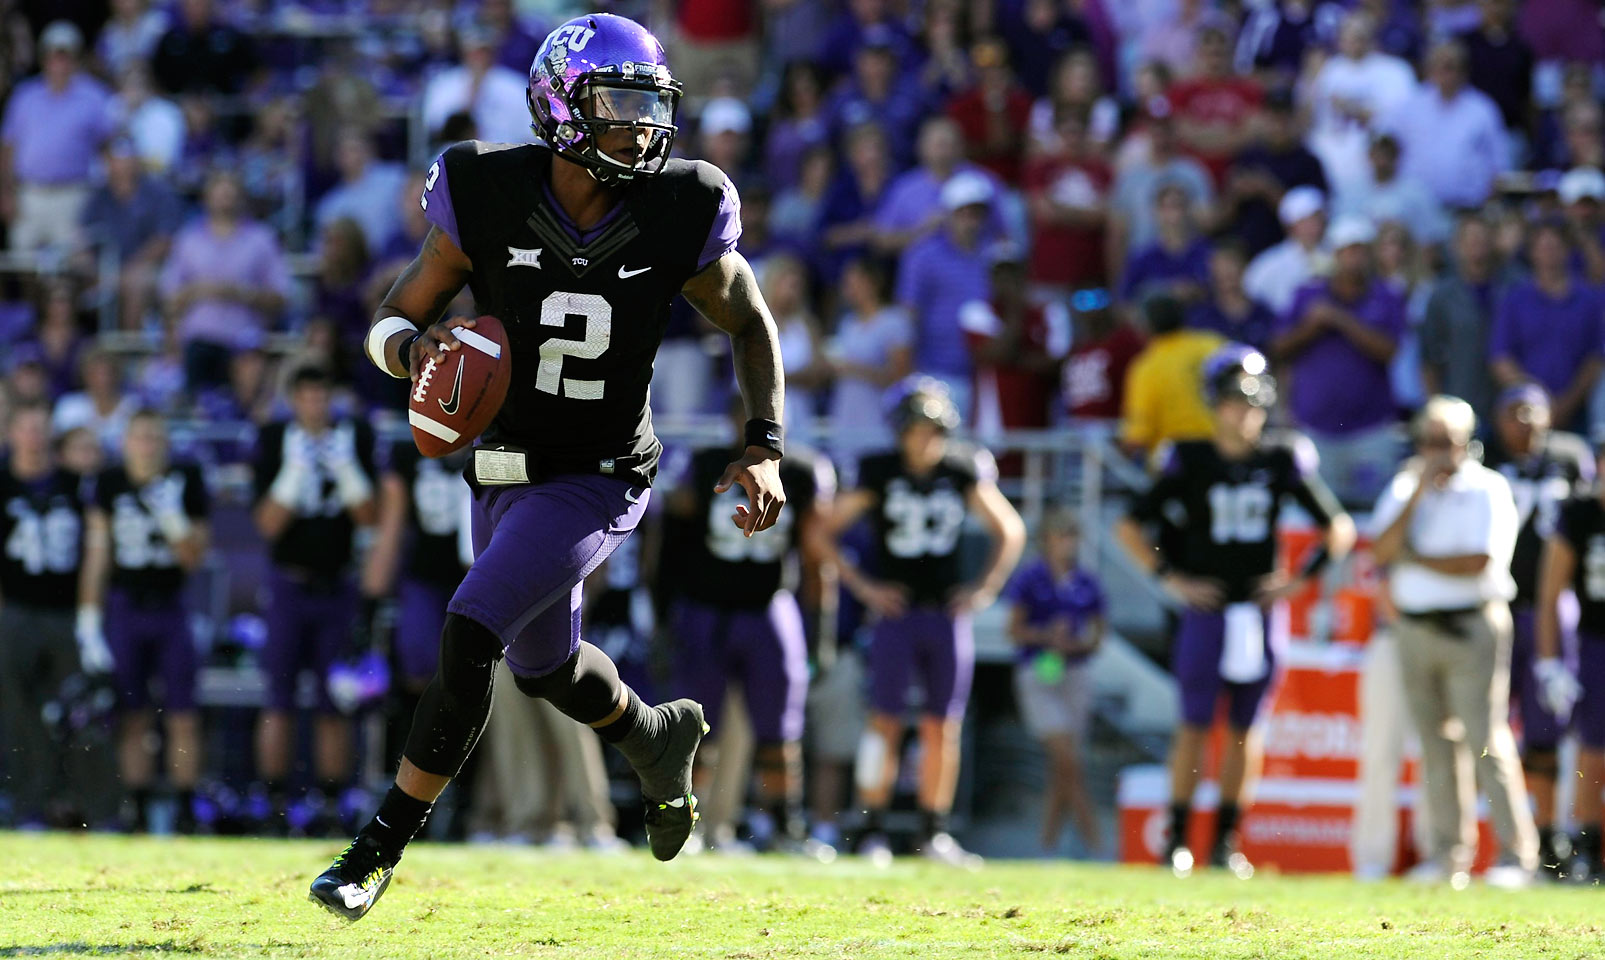 Boykin is arguably the top returning player in college football. He nearly led the Horned Frogs' high-powered offense to the College Football Playoff last season, throwing for over 3,900 yards and 33 touchdowns.